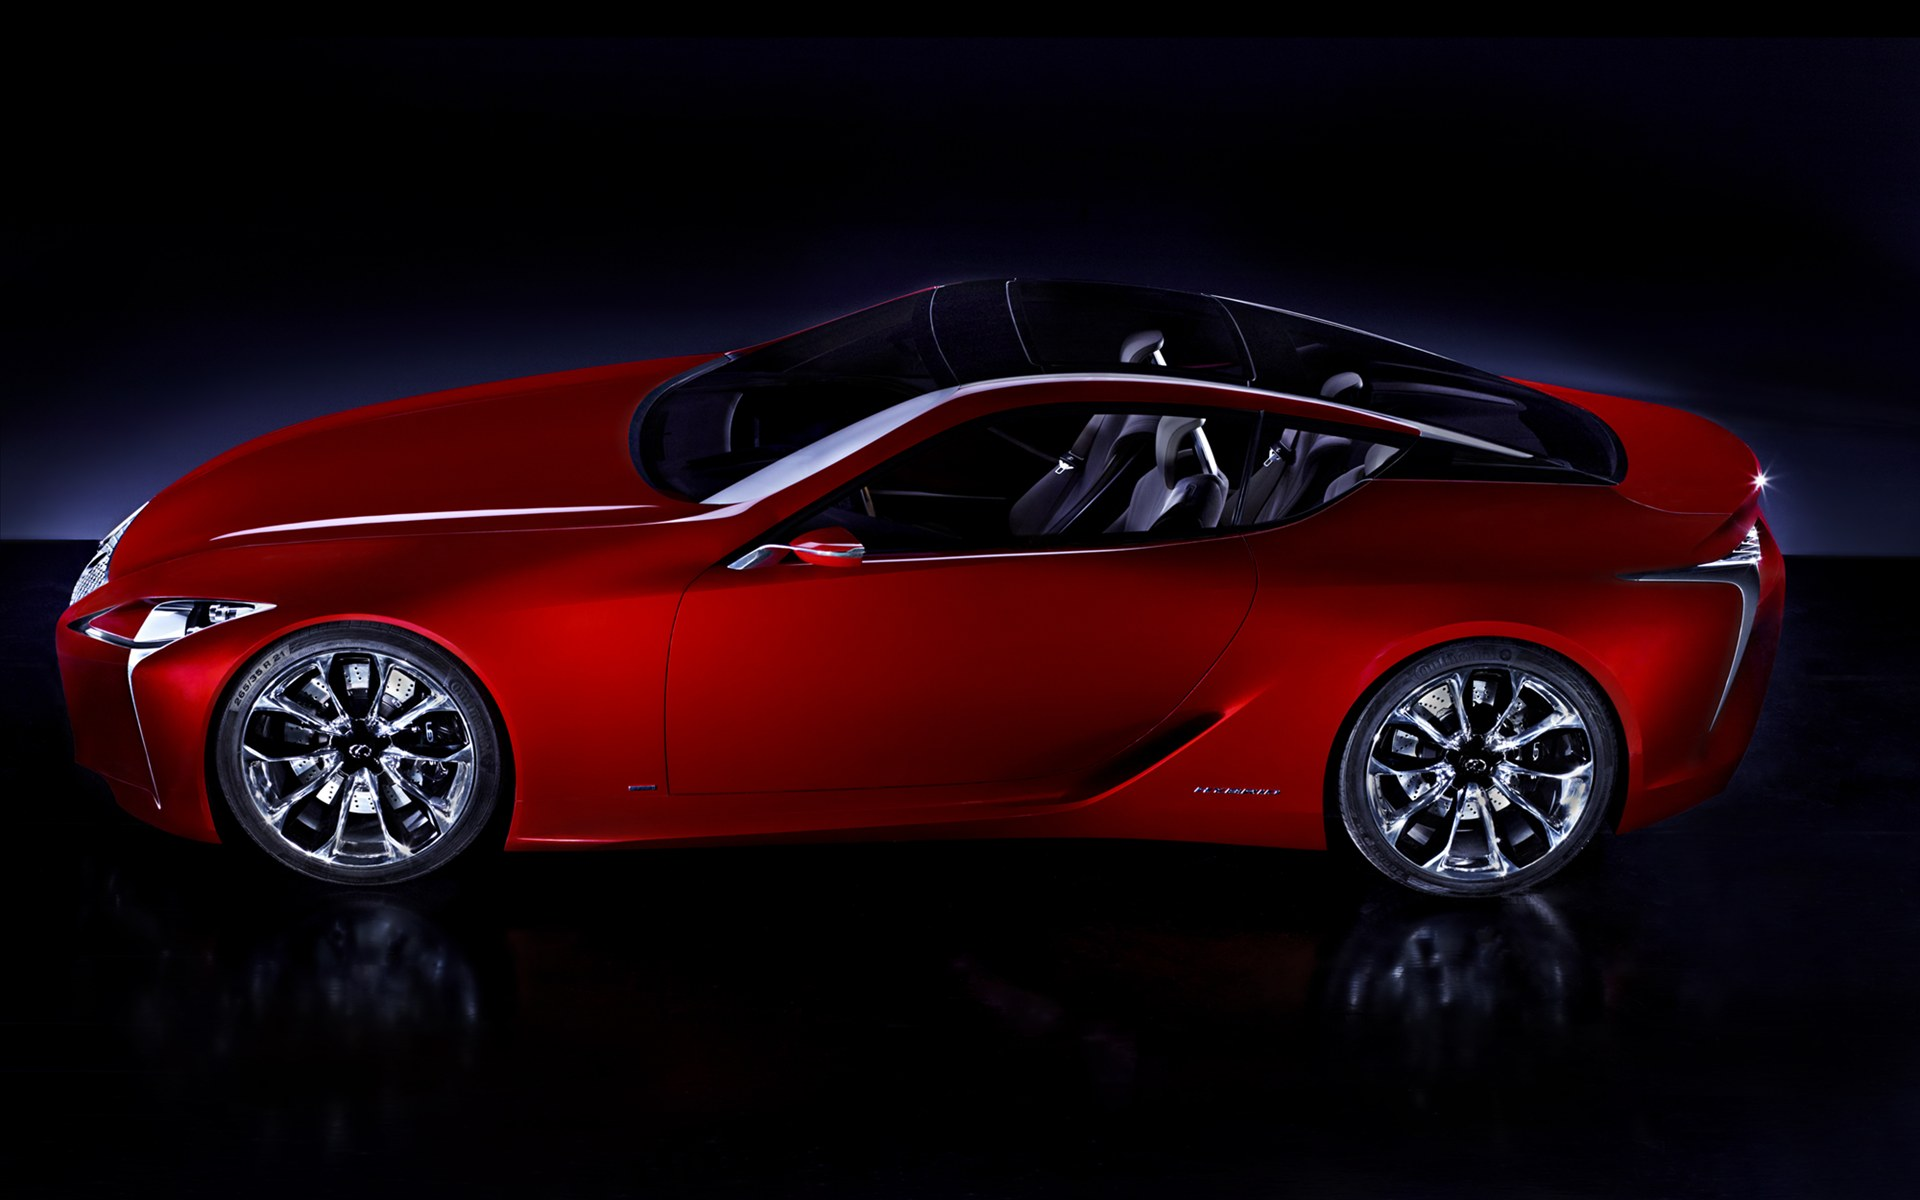 2012 Lexus LF LC Sports Coupe Concept 1 2012 Lexus LF LC Sports Coupe Concept   Glamorous, Eco friendly and Fuel Economic